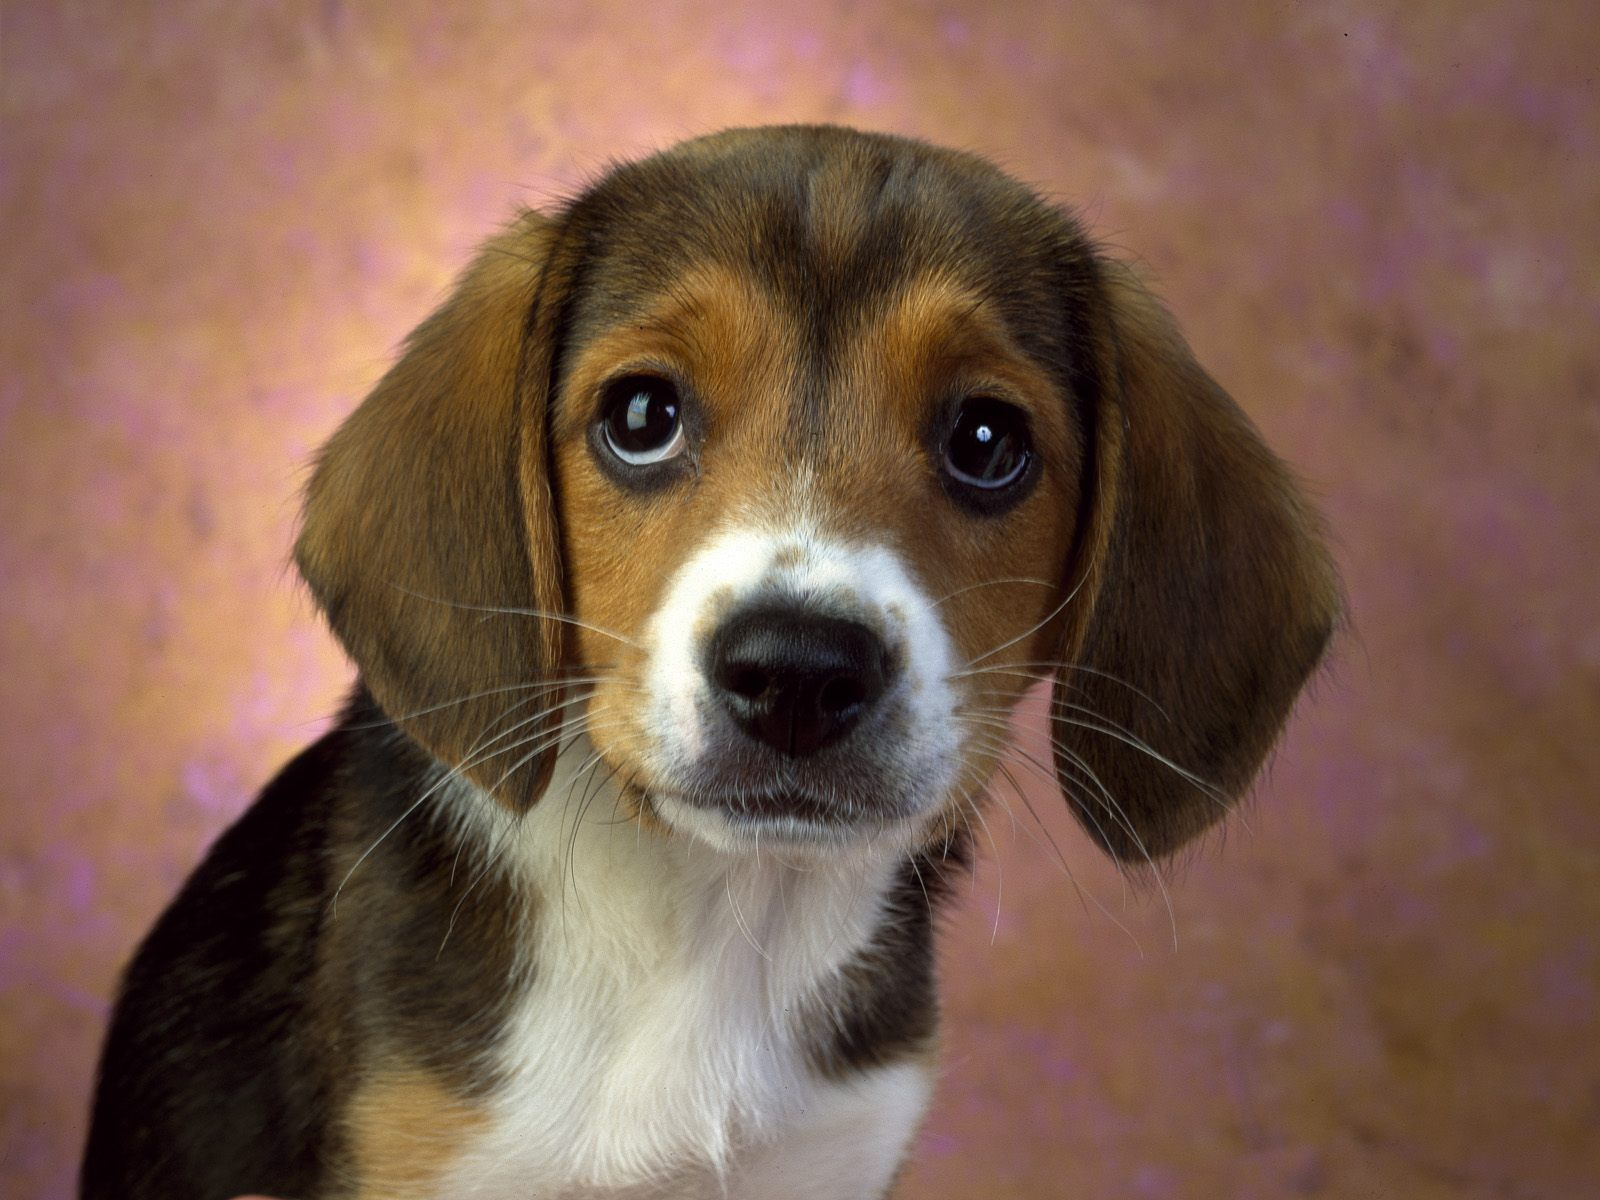 Beagle Puppy Dog Eyes If You Want Loyalty Get A Dog If You Want